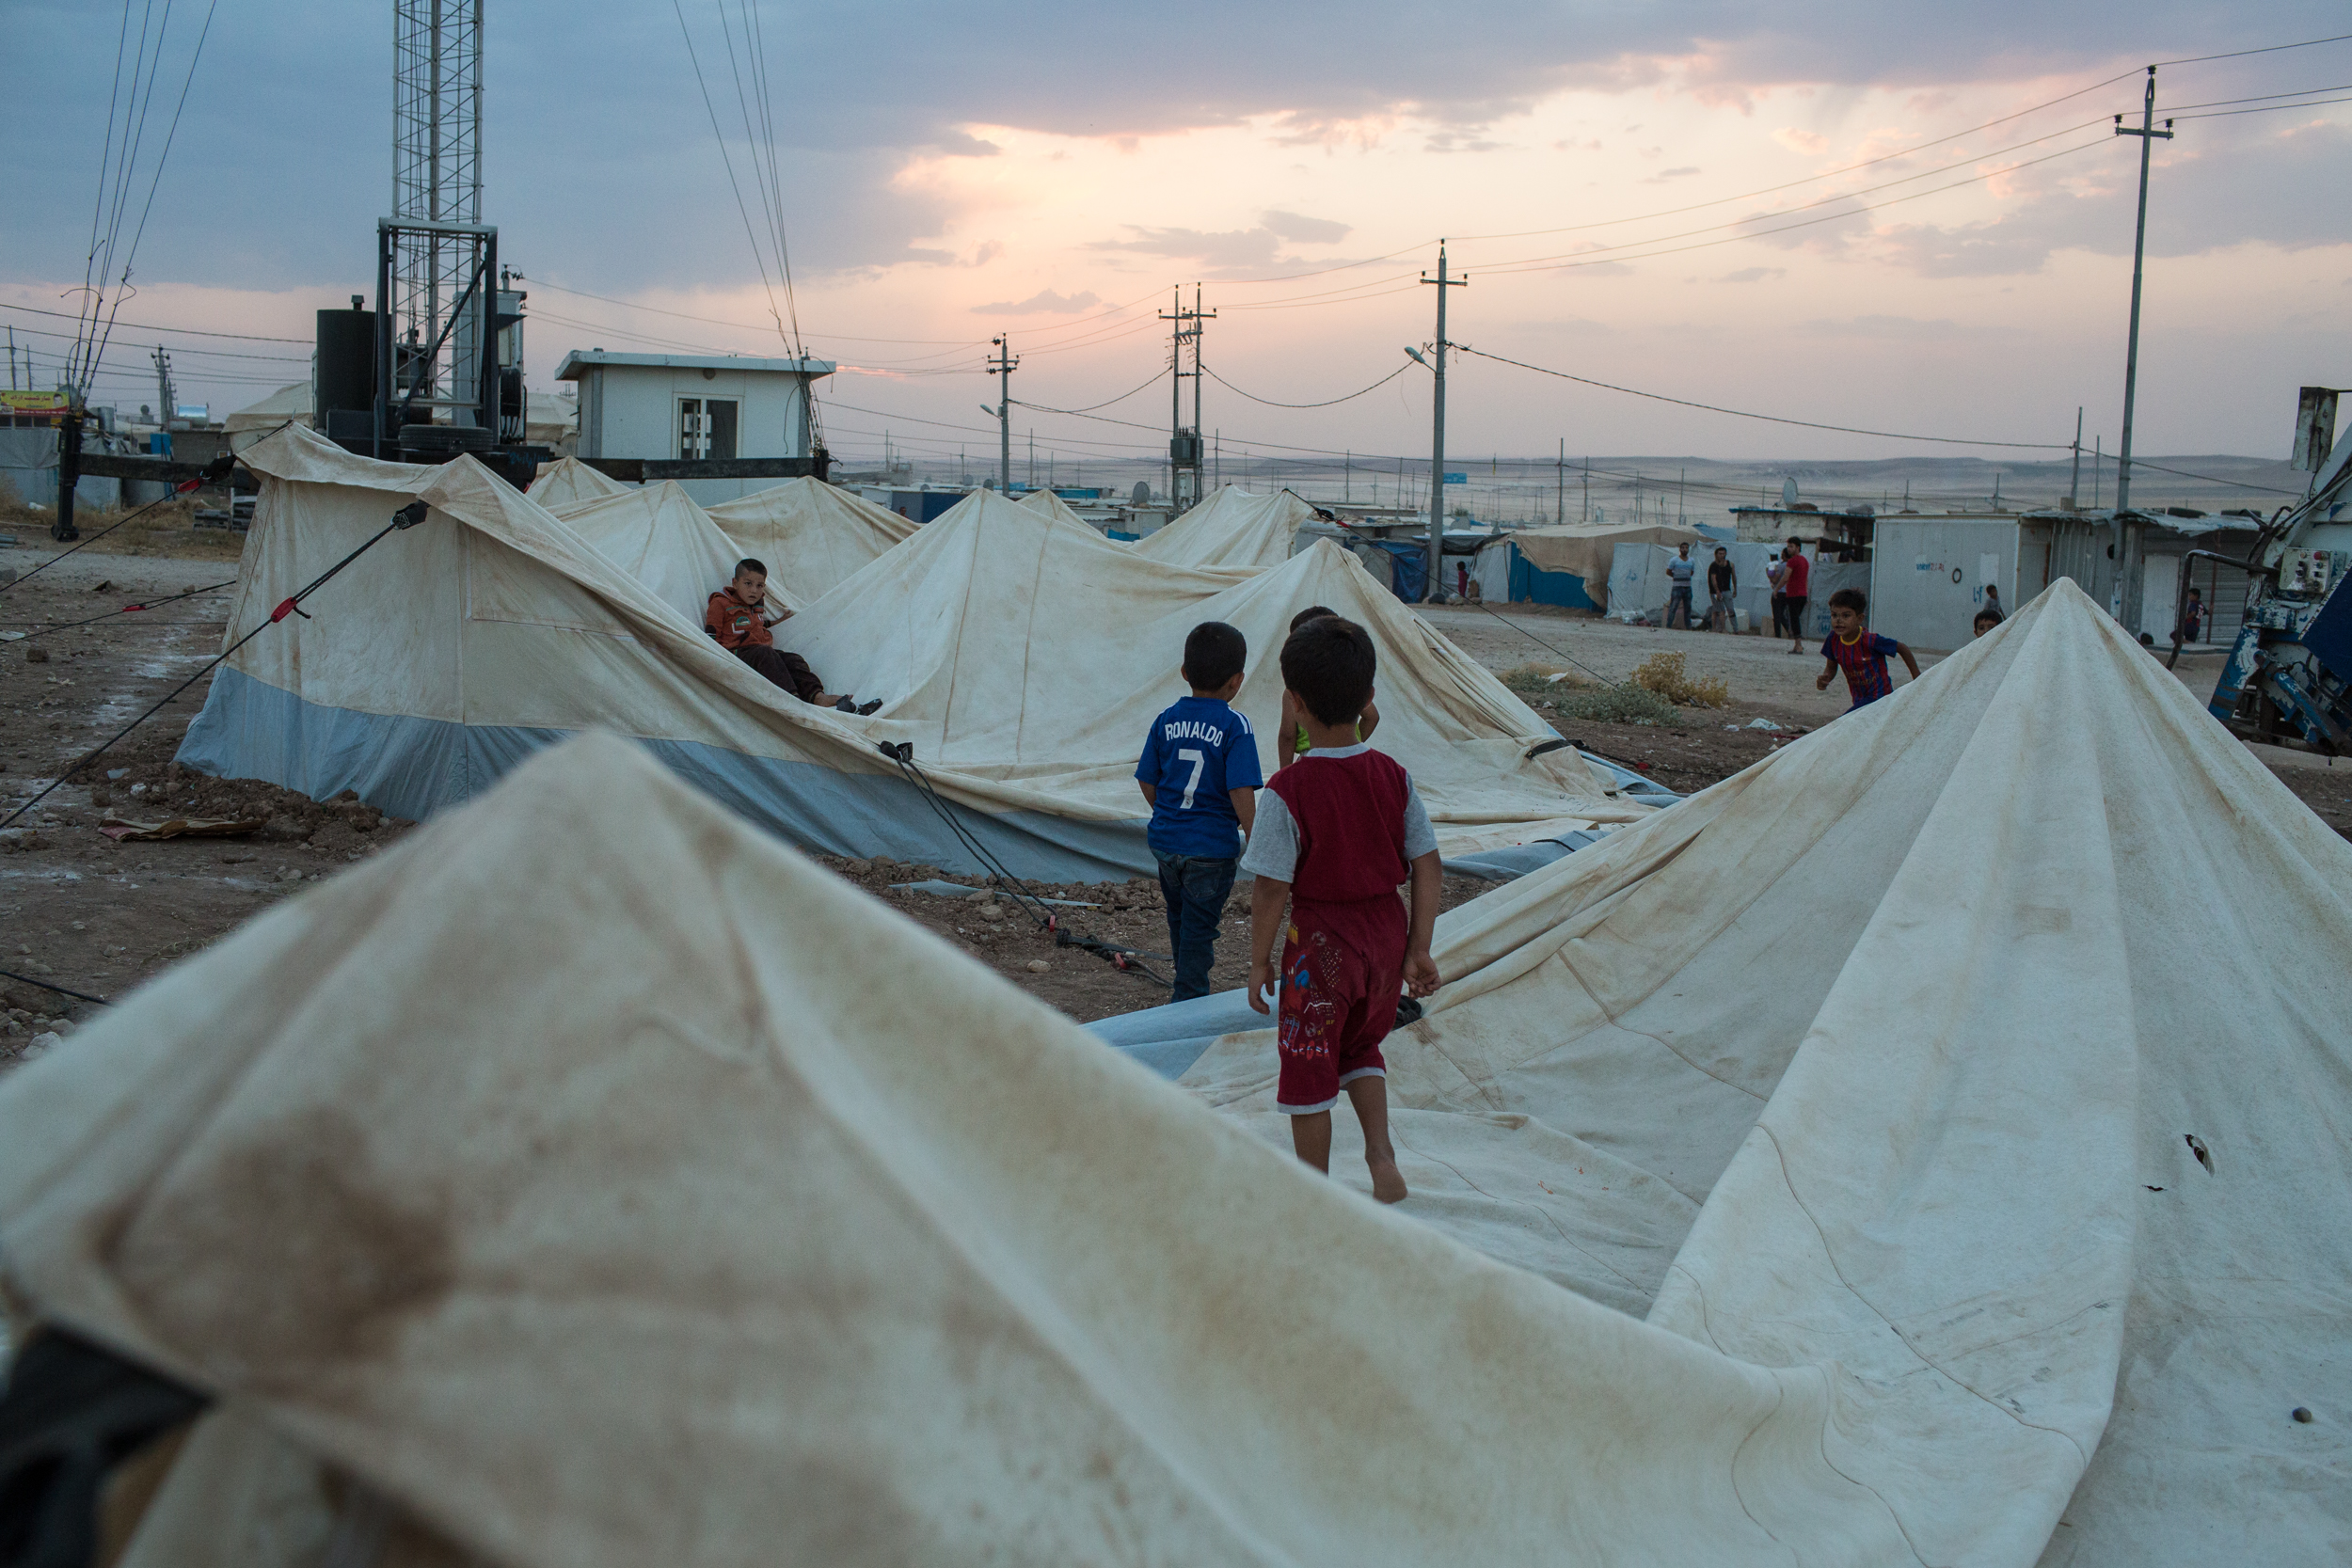 More than 11 million Syrians have been displaced by the violence in their homeland